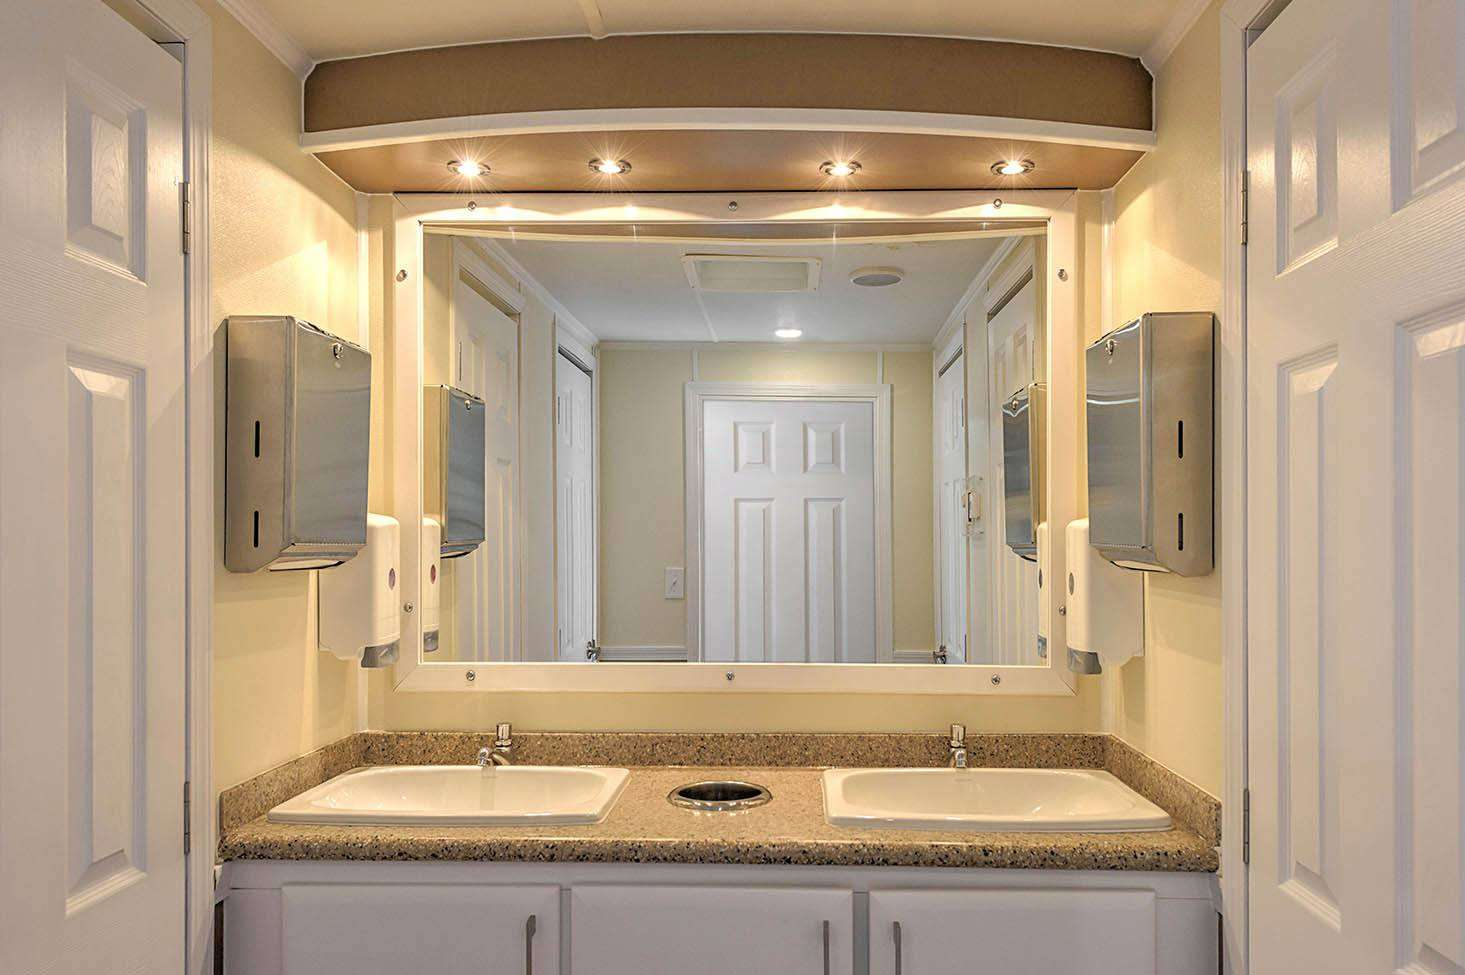 Luxury Restroom Trailer - Interior